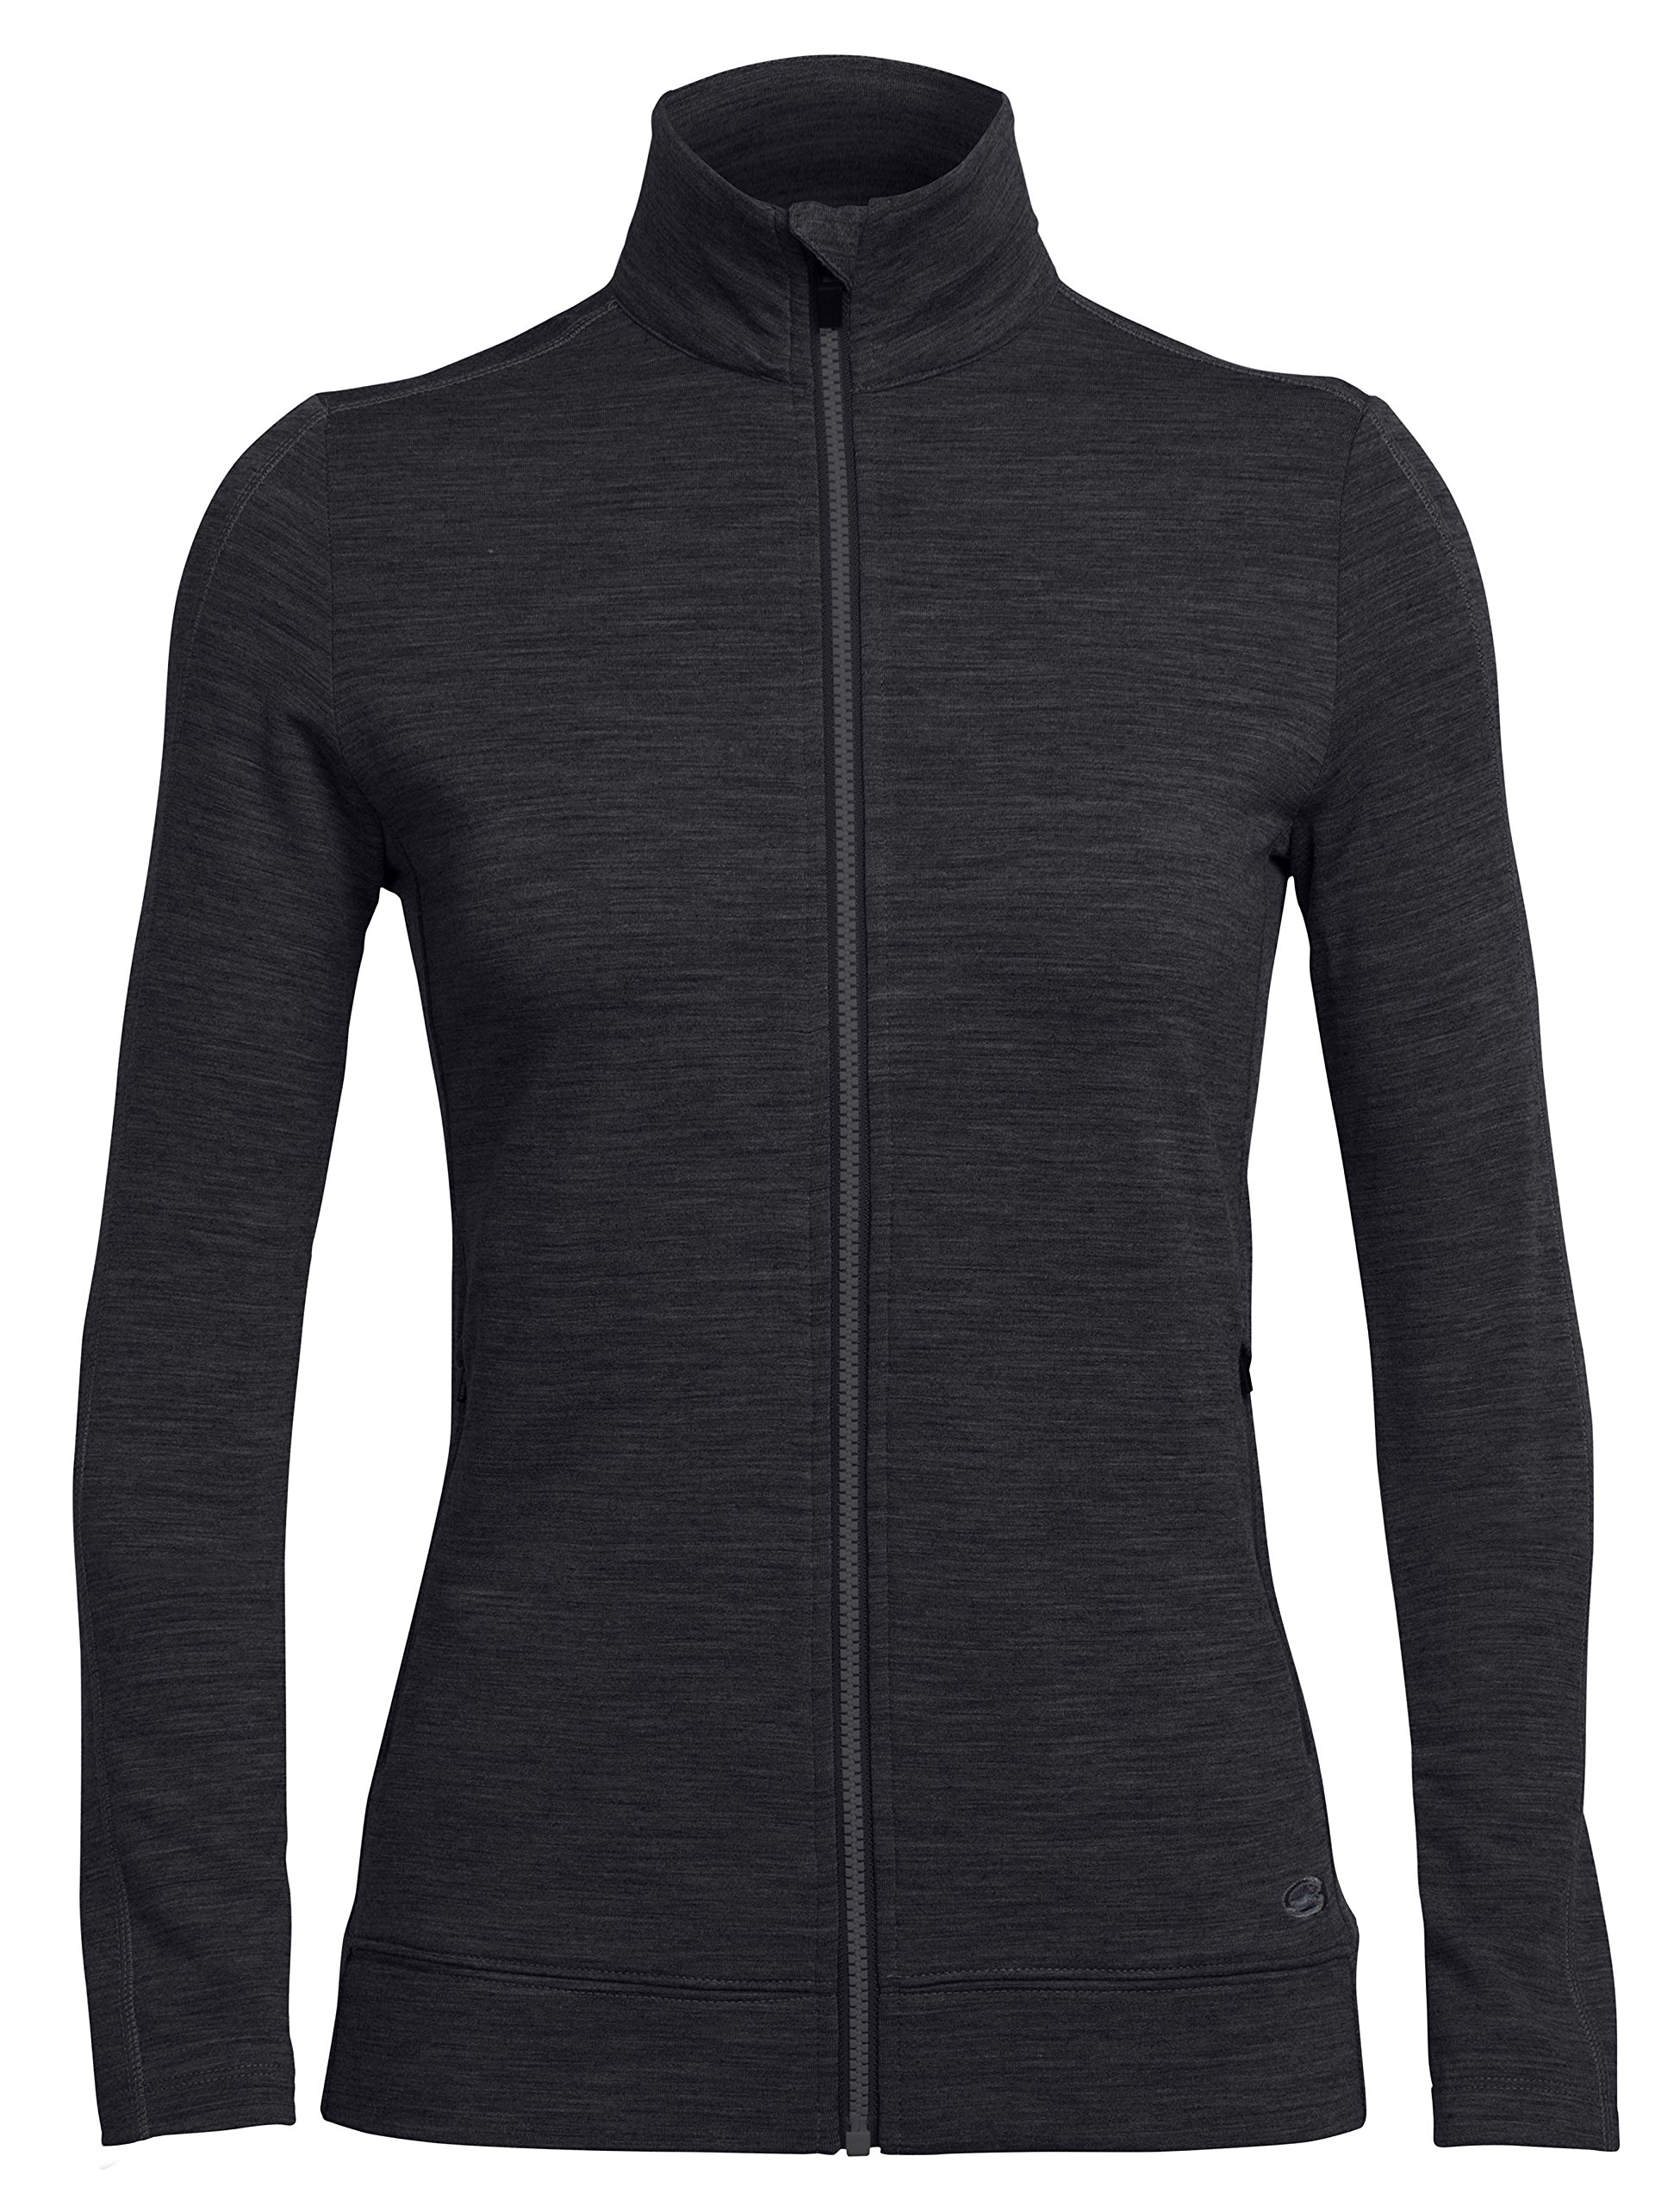 Icebreaker Merino Women's Dia Long Sleeve Zip Sweater, Black, Medium